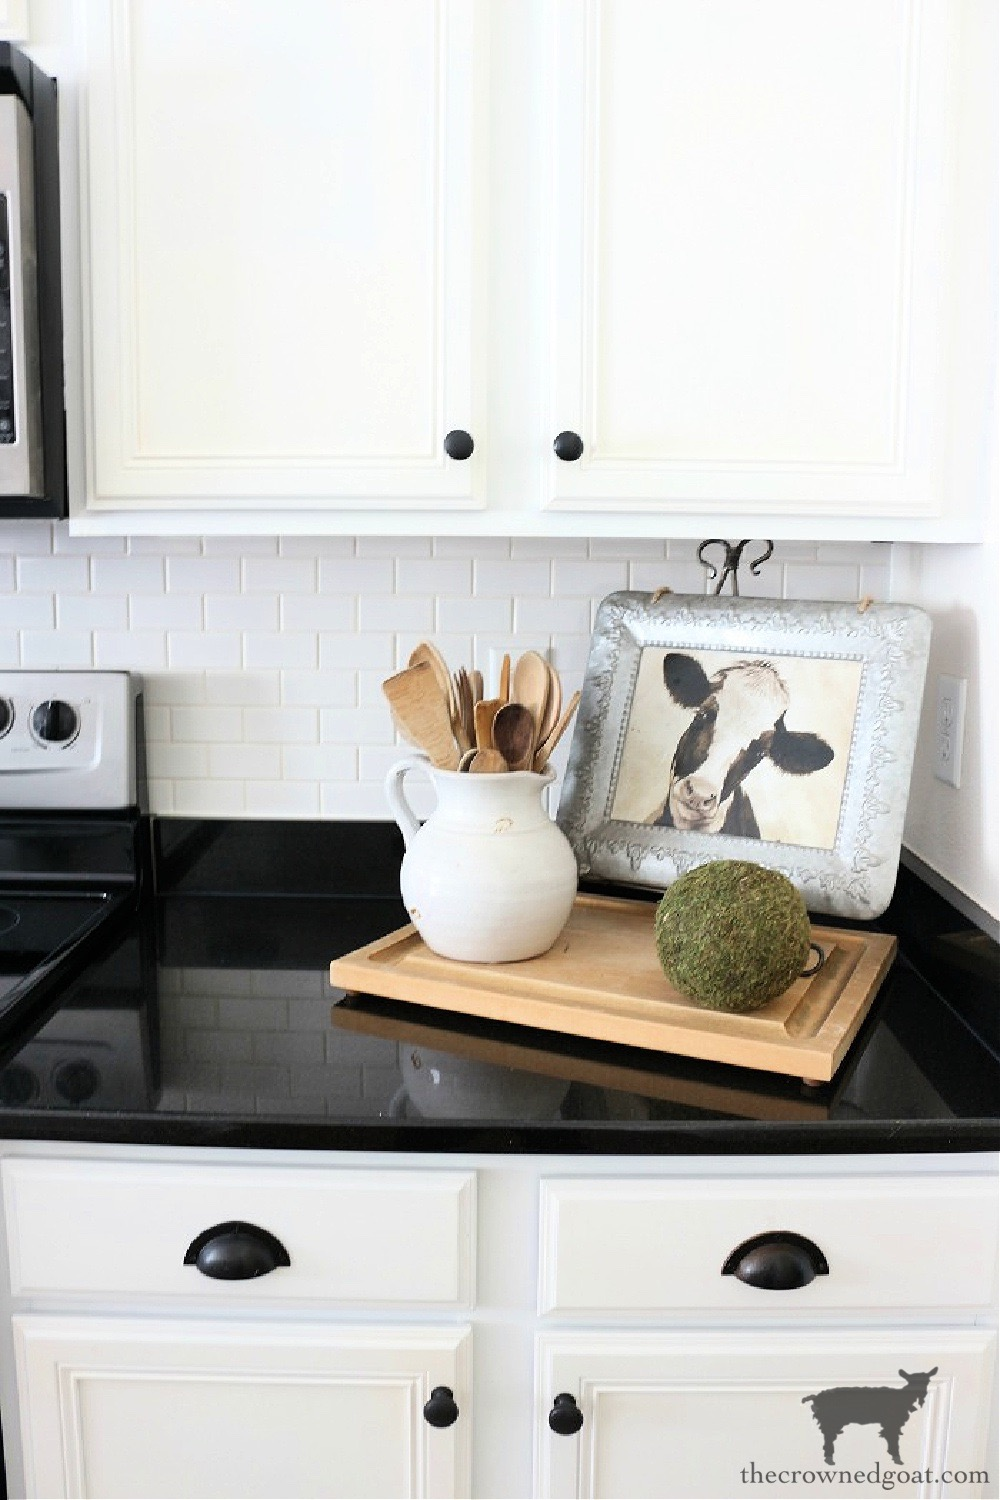 Easily Change the Look of Existing Alabaster Colored Grout-The Crowned Goat